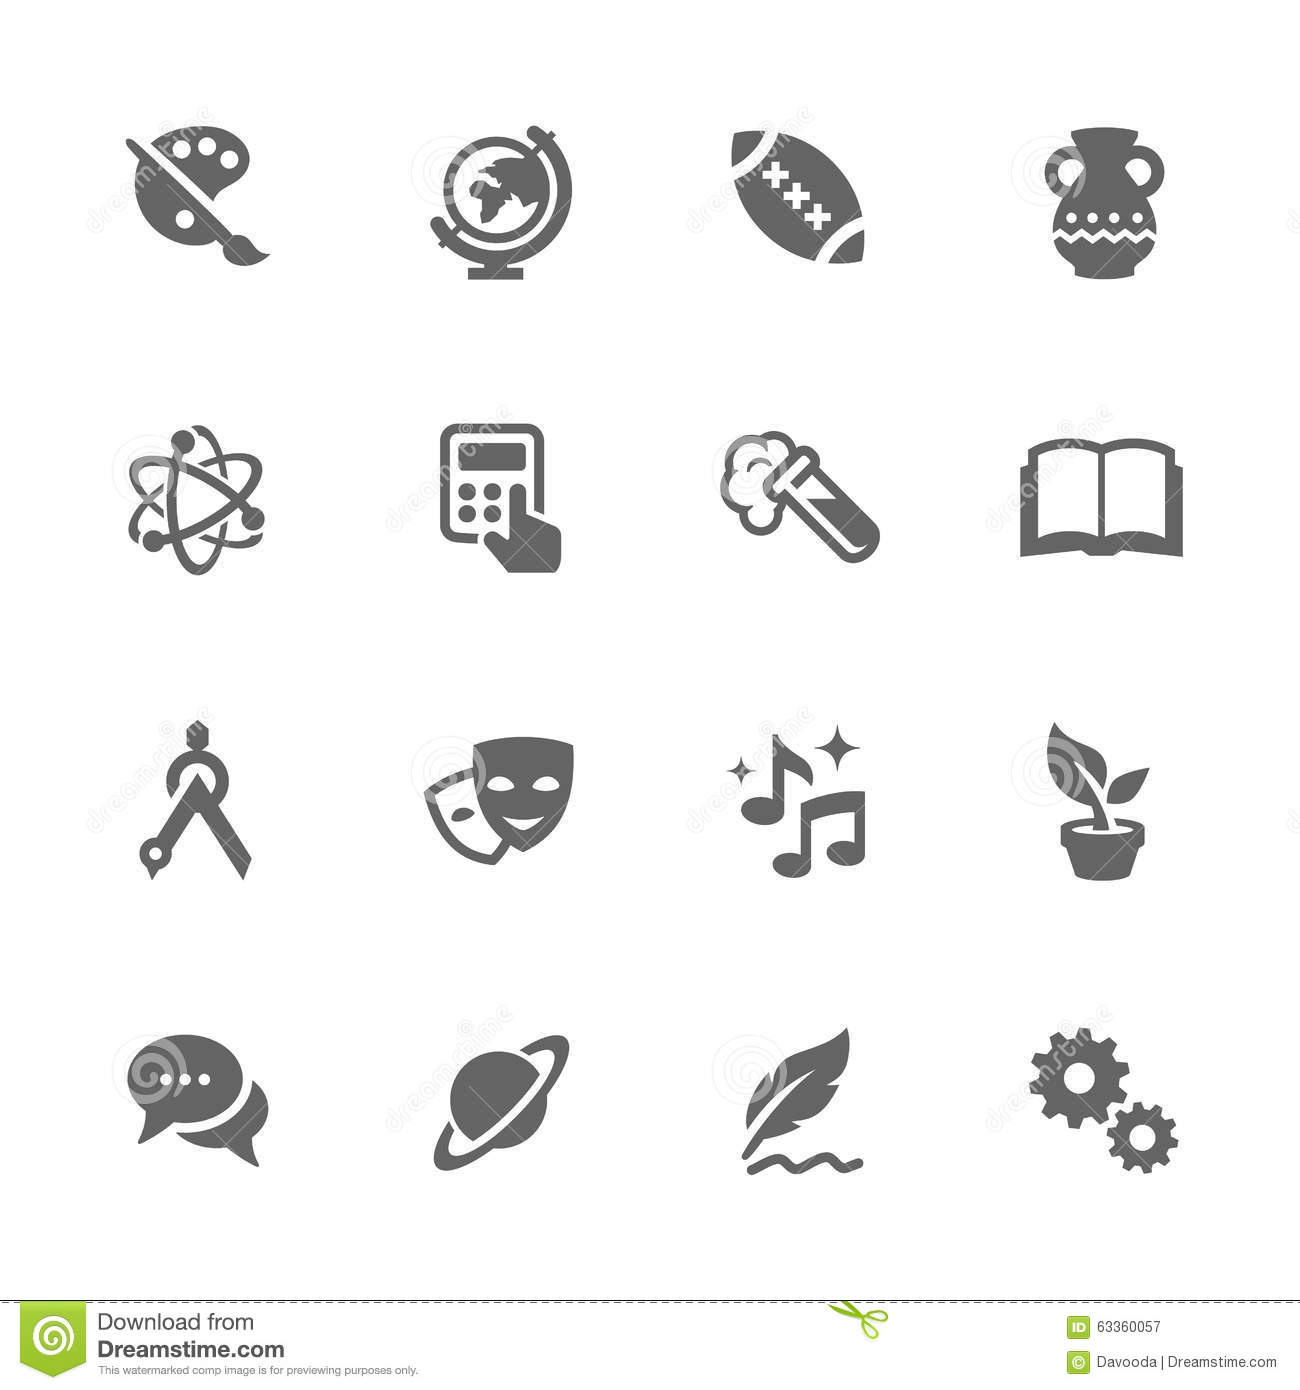 School subject icons stock illustrations 754 school subject icons simple school subject icons simple set of school subject related vector icons contains such buycottarizona Image collections